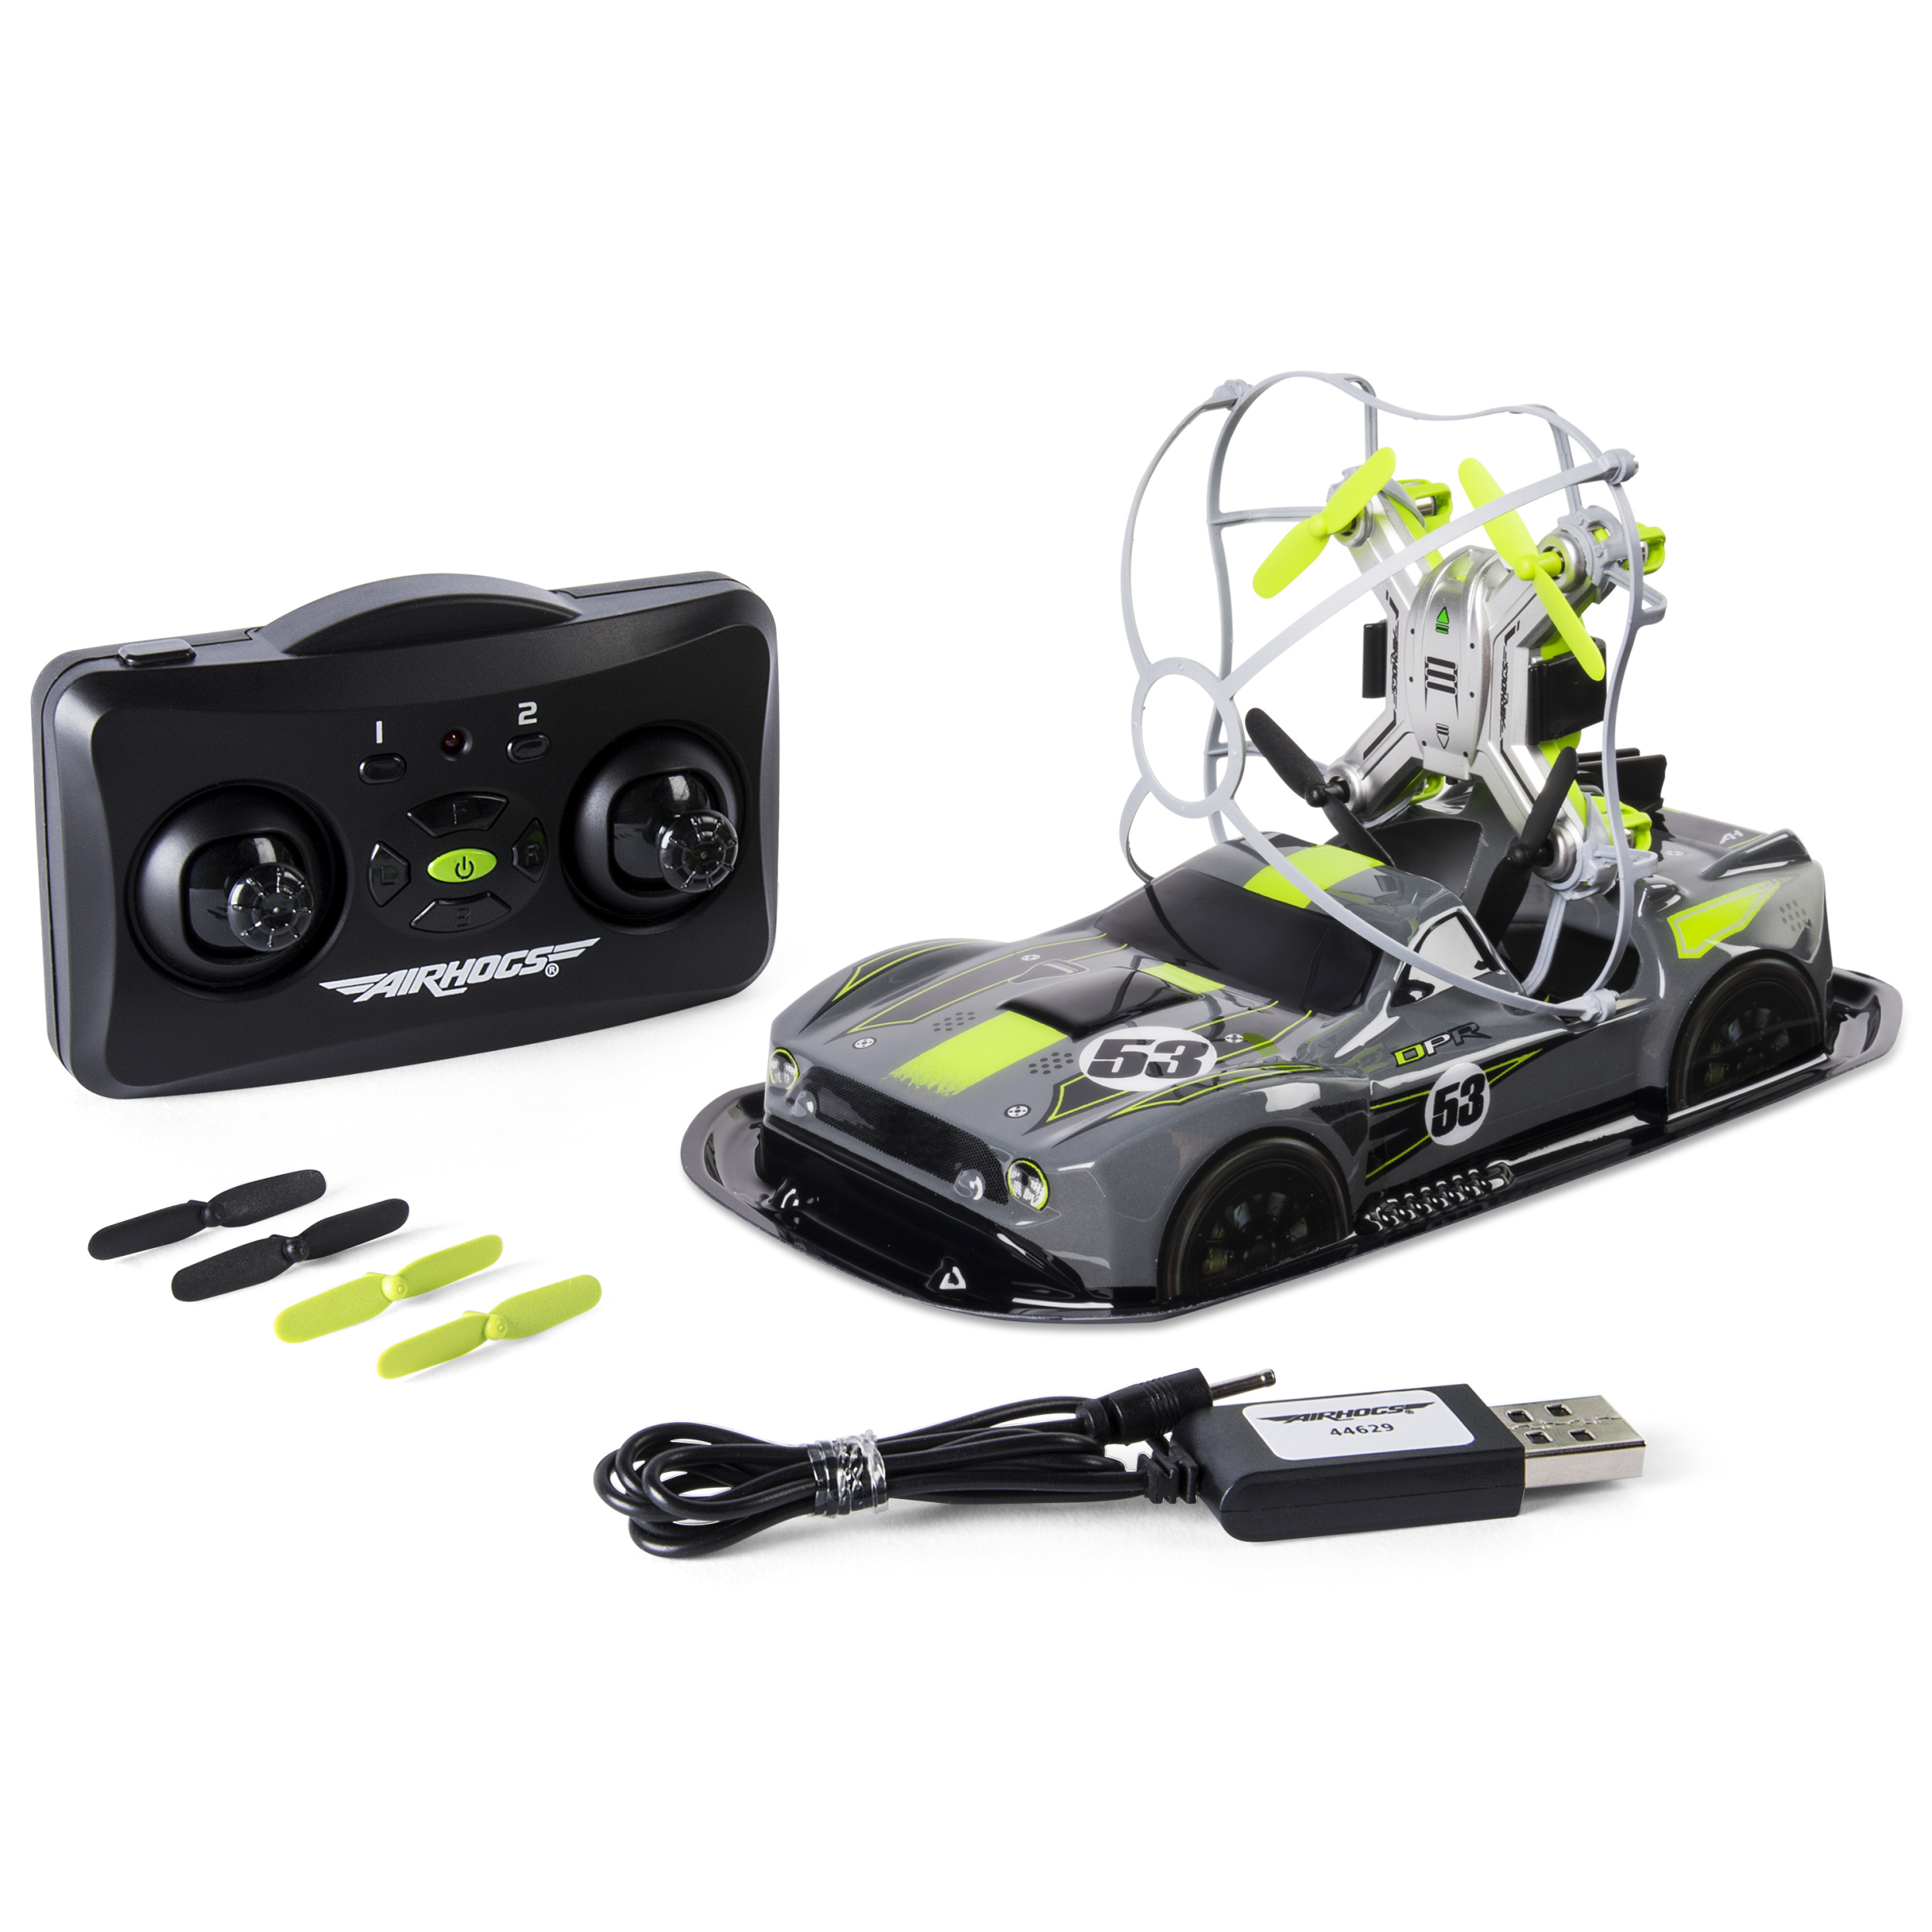 Air Hogs - 2-in-1 Drone Power Racers for Driving and Flying - Muscle Car